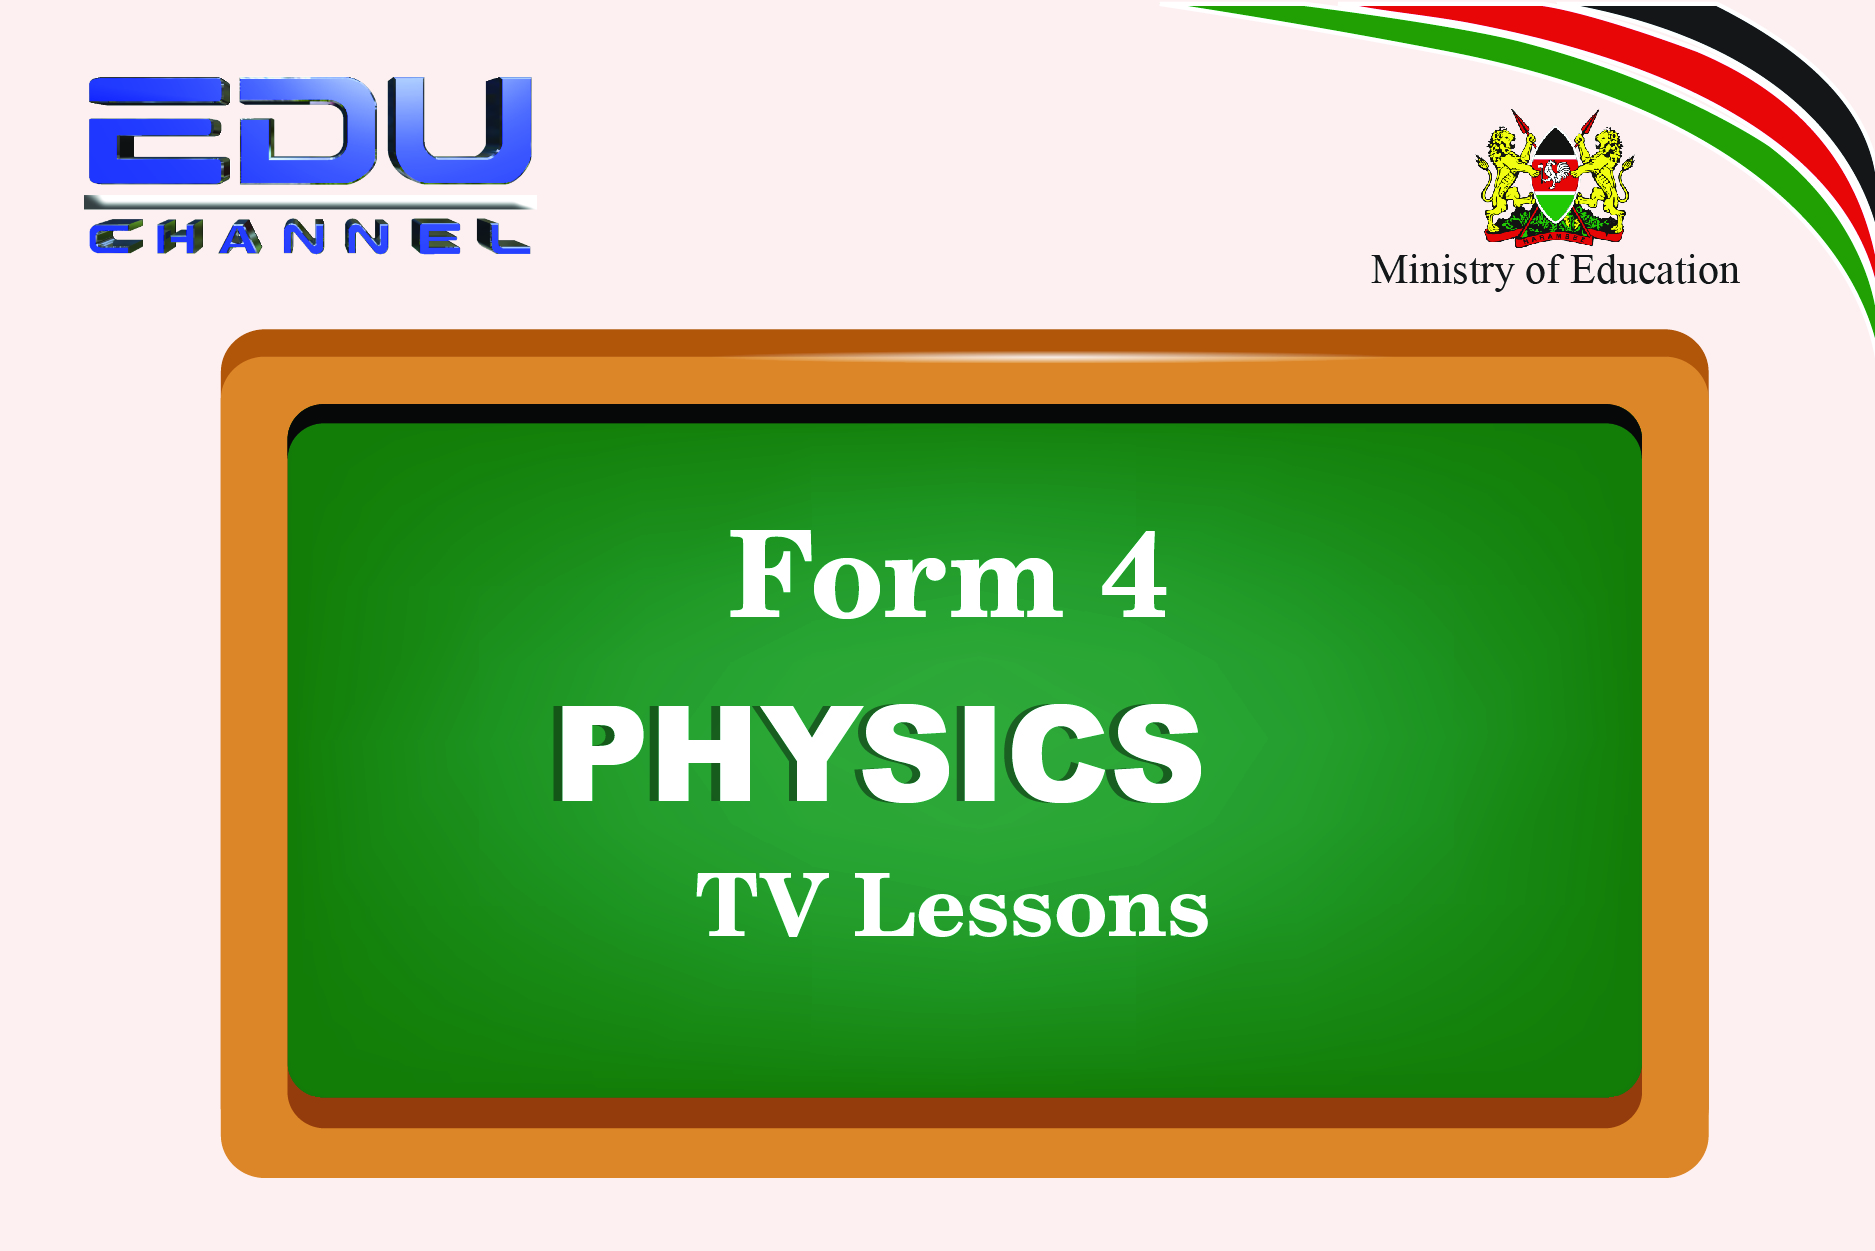 Form 4 physics Lesson 10: Cathode  rays - Wave form displays